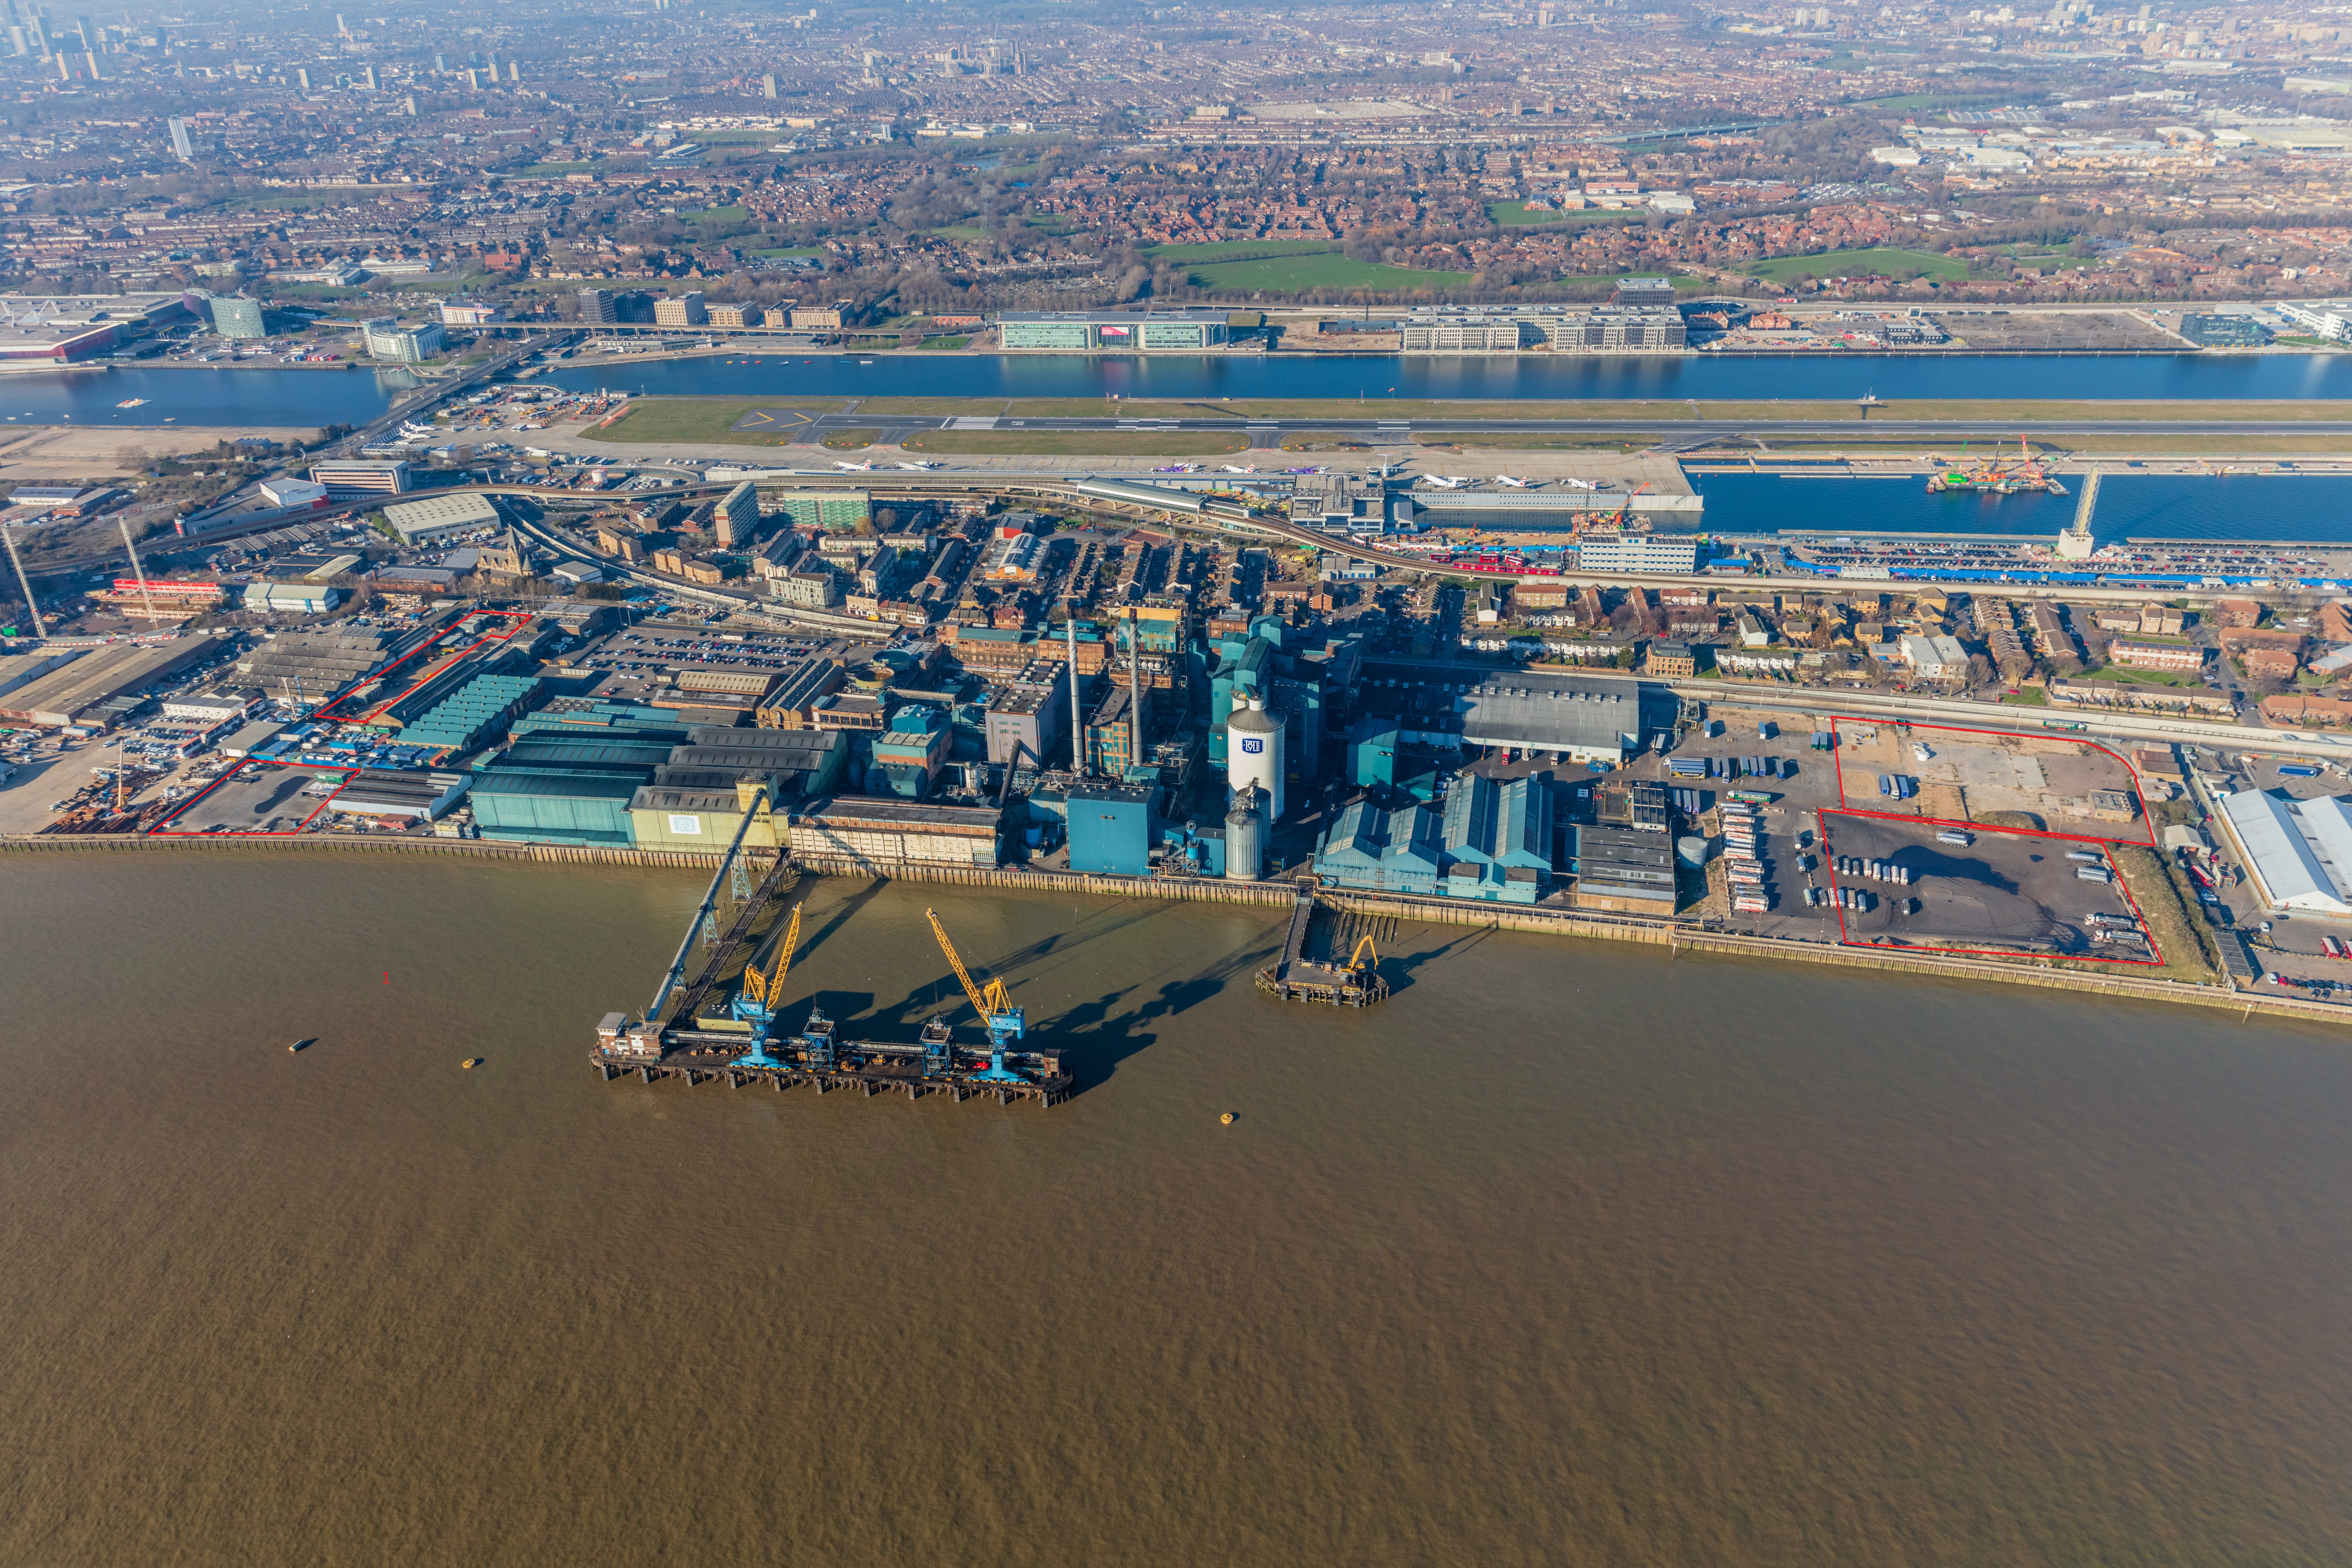 Glenny appointed to let land adjoining Tate & Lyle Sugars Thames Refinery